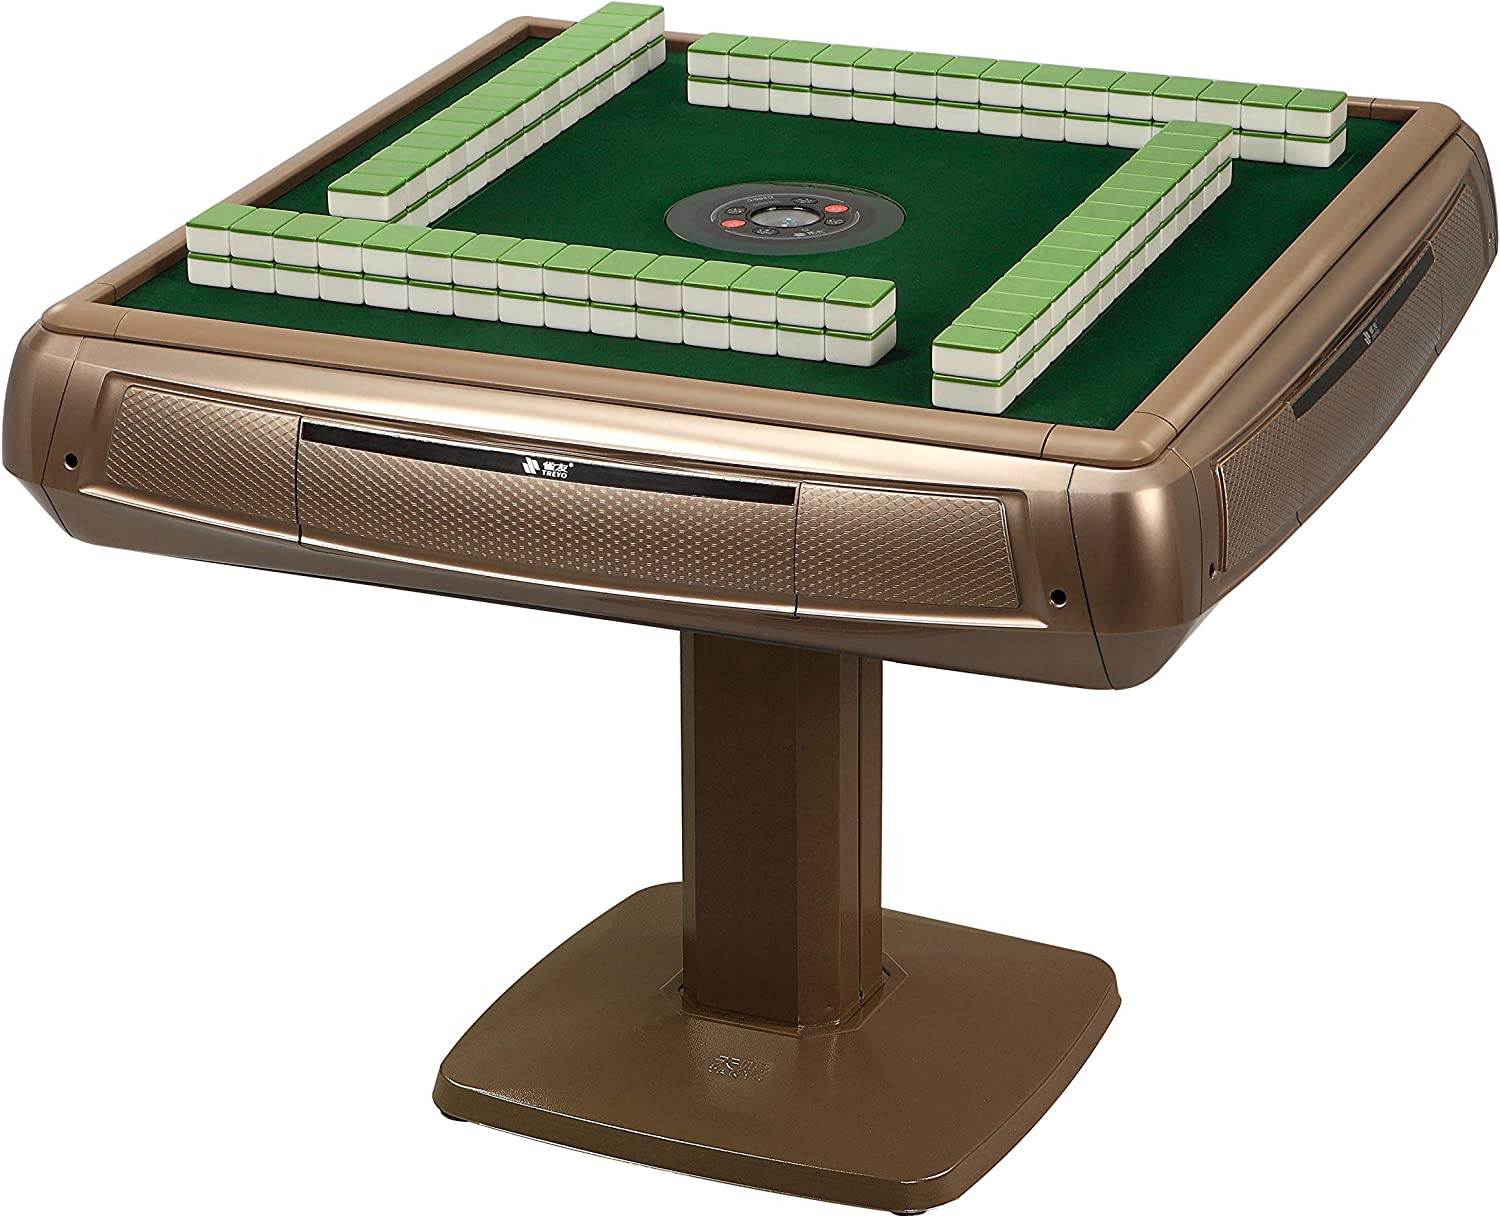 Treyo Quality Model C100 Automatic Mahjong Single Leg Table